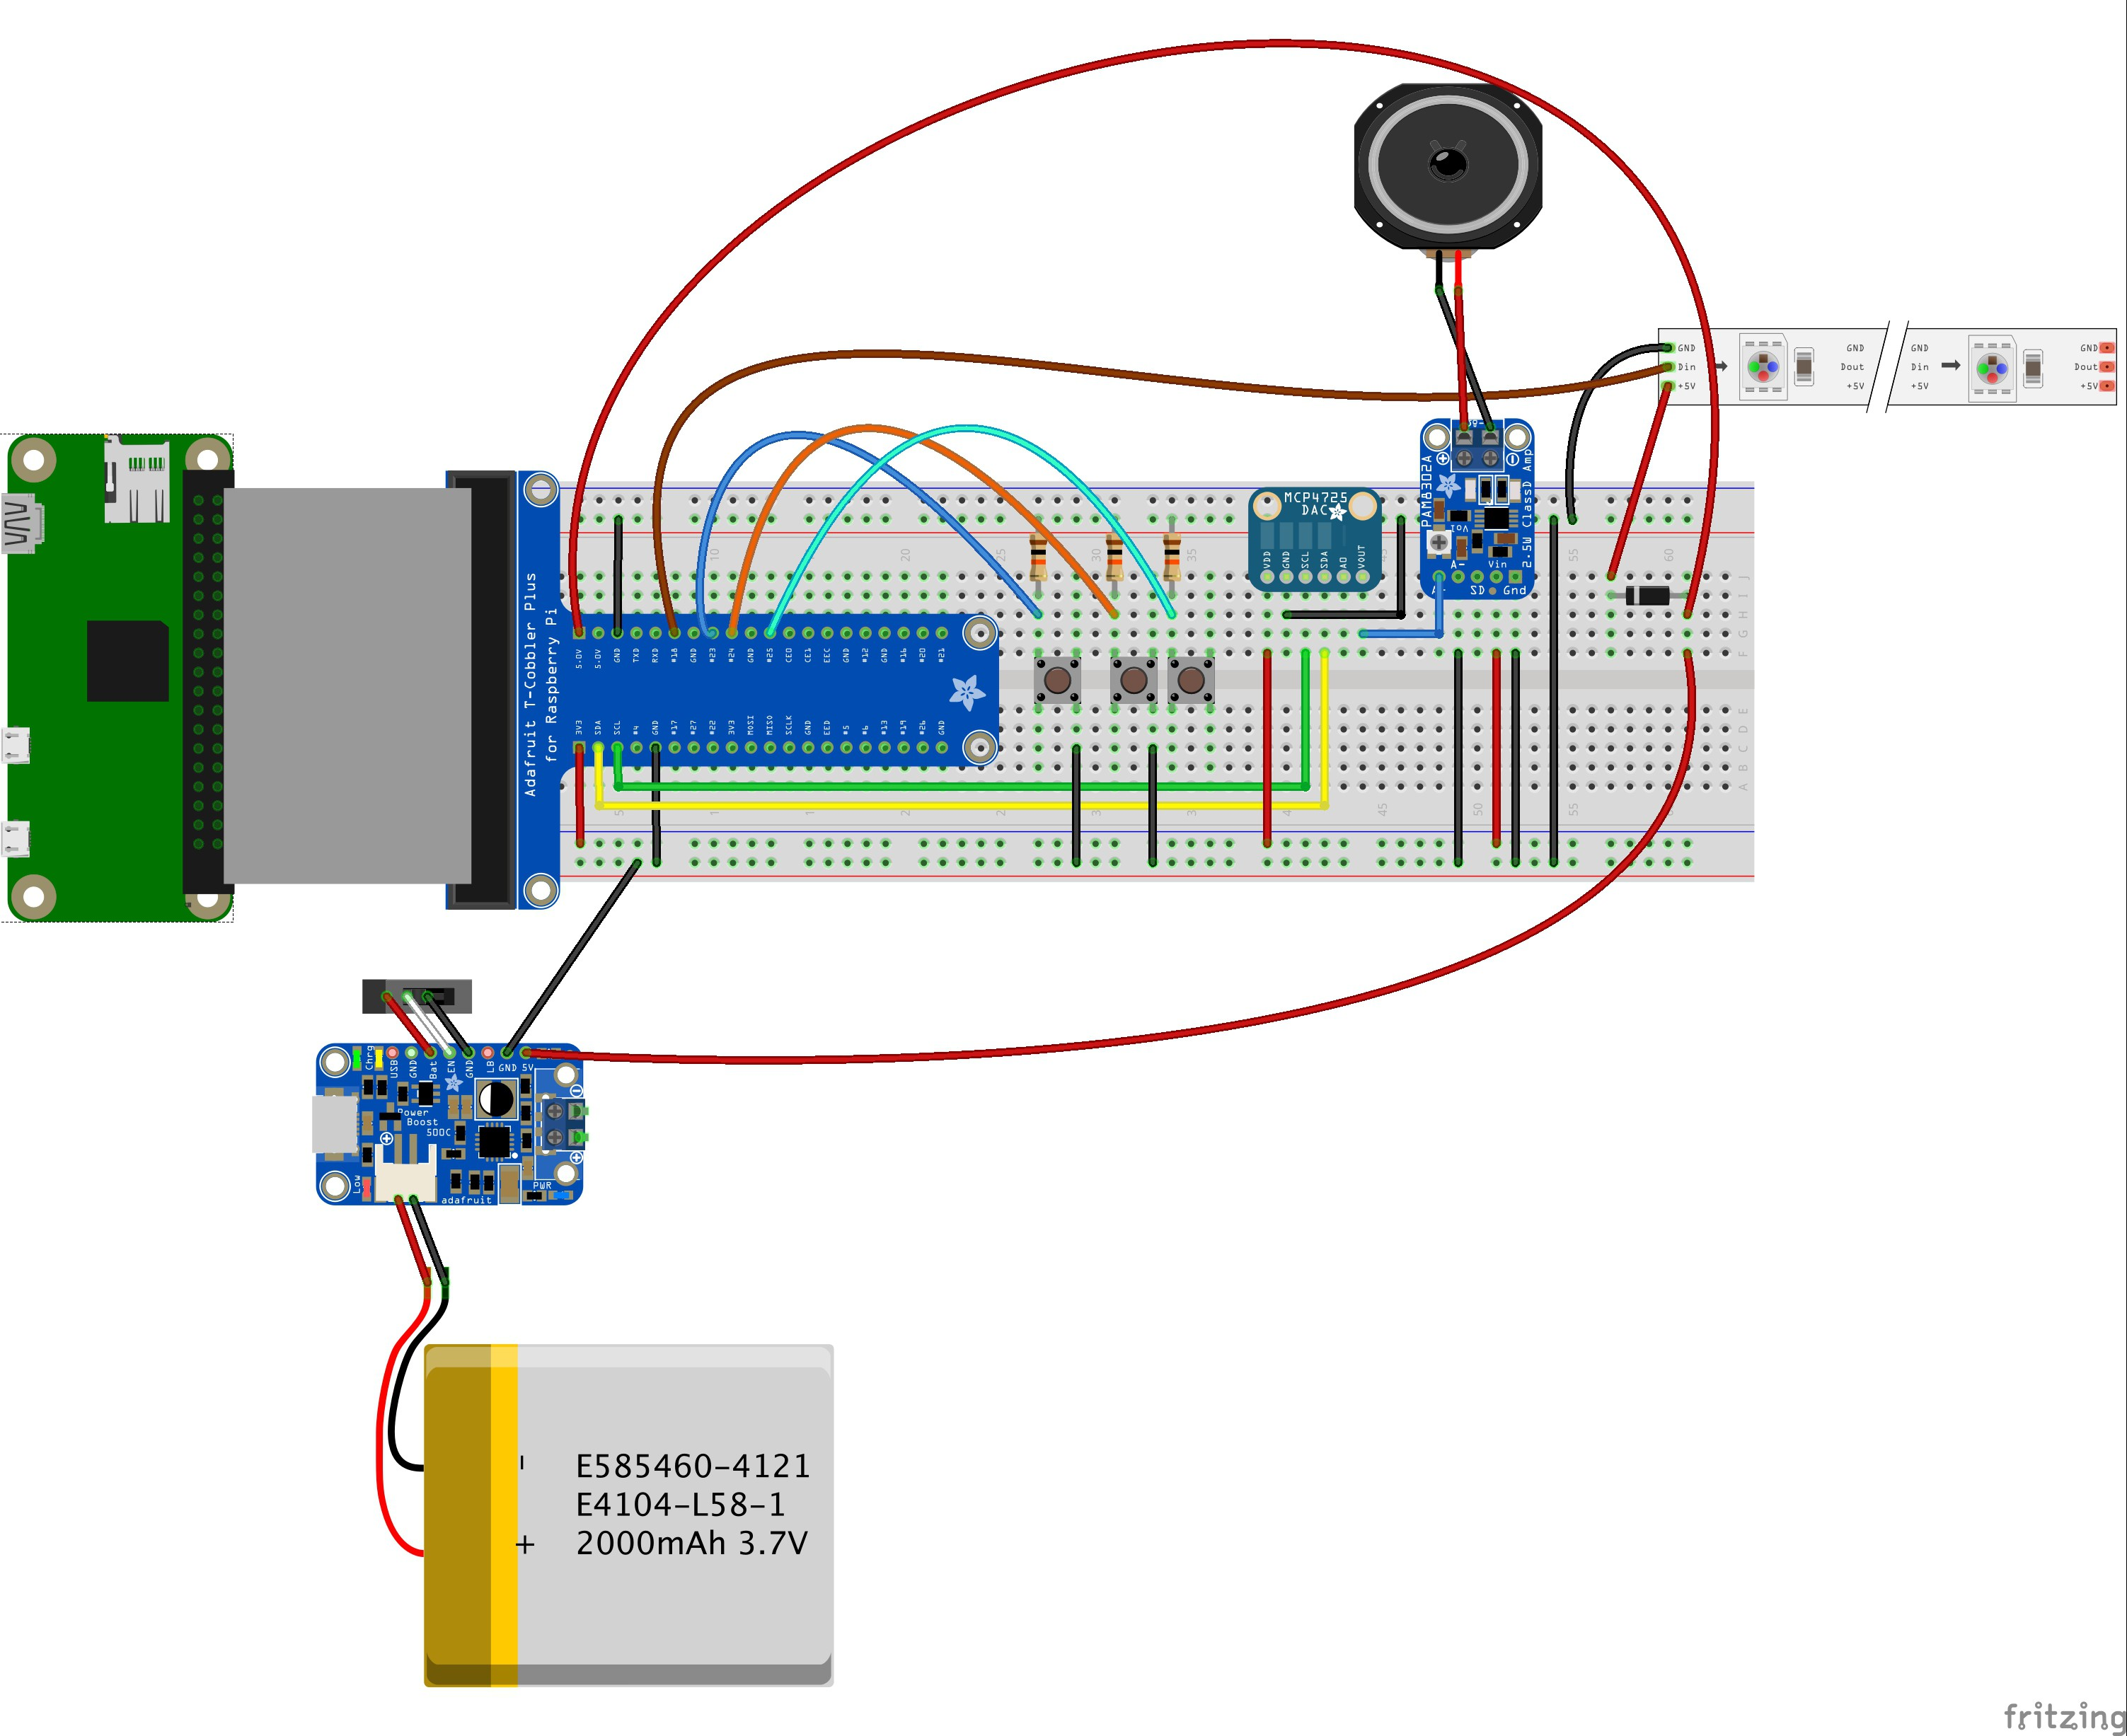 7581021459181303883 texteye raspberry pi (zero) mobile textreader hackaday io usb web camera wiring diagram at bakdesigns.co